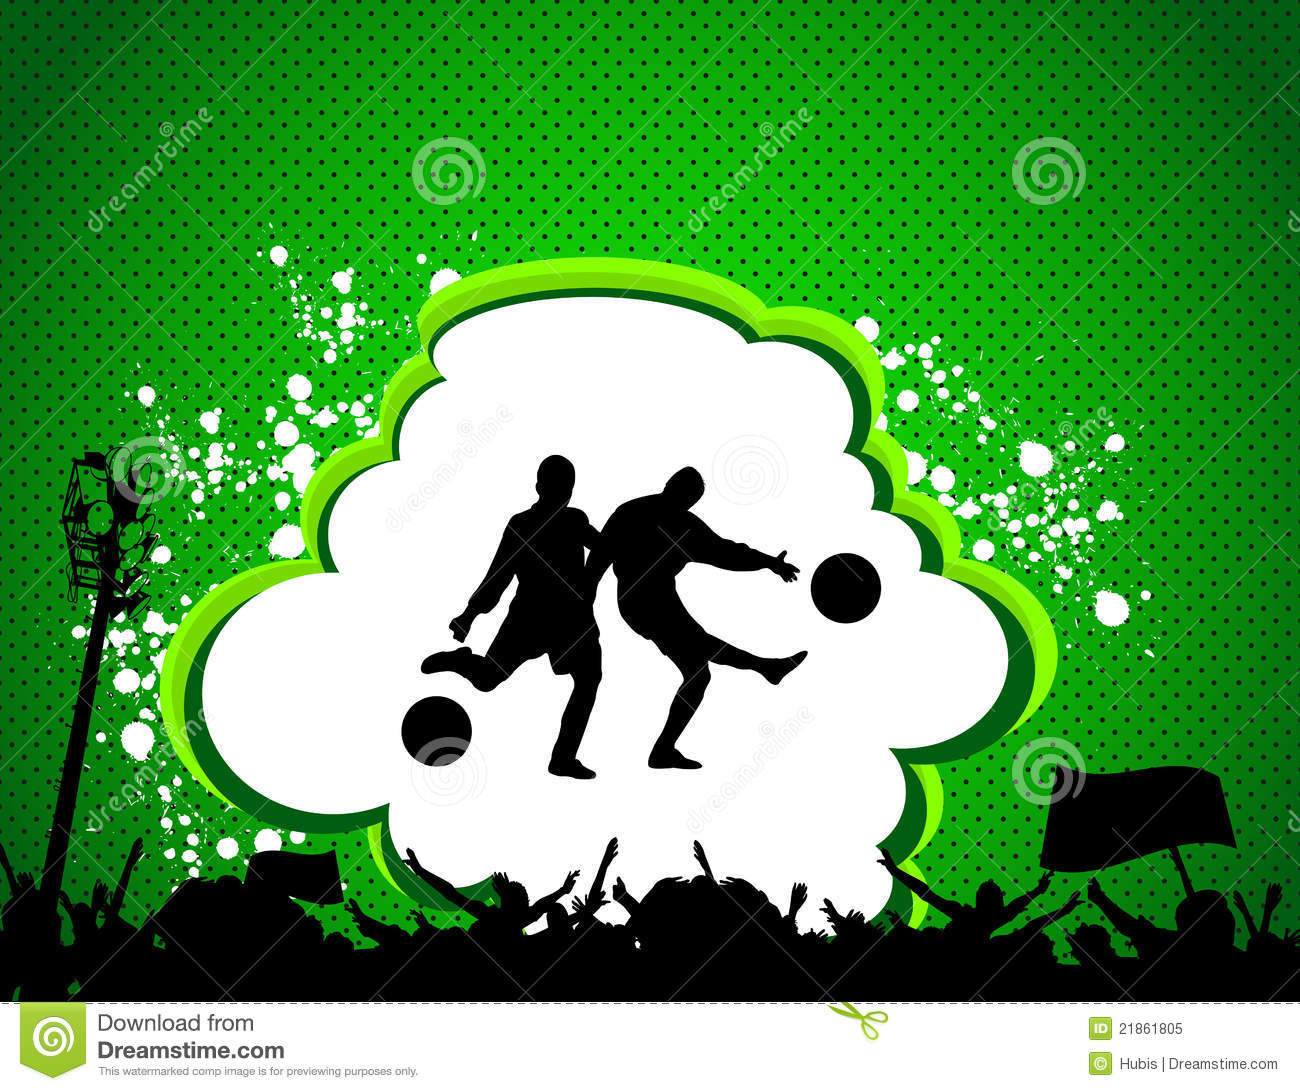 Football Match Poster Royalty Free Stock Photo - Image: 21861805